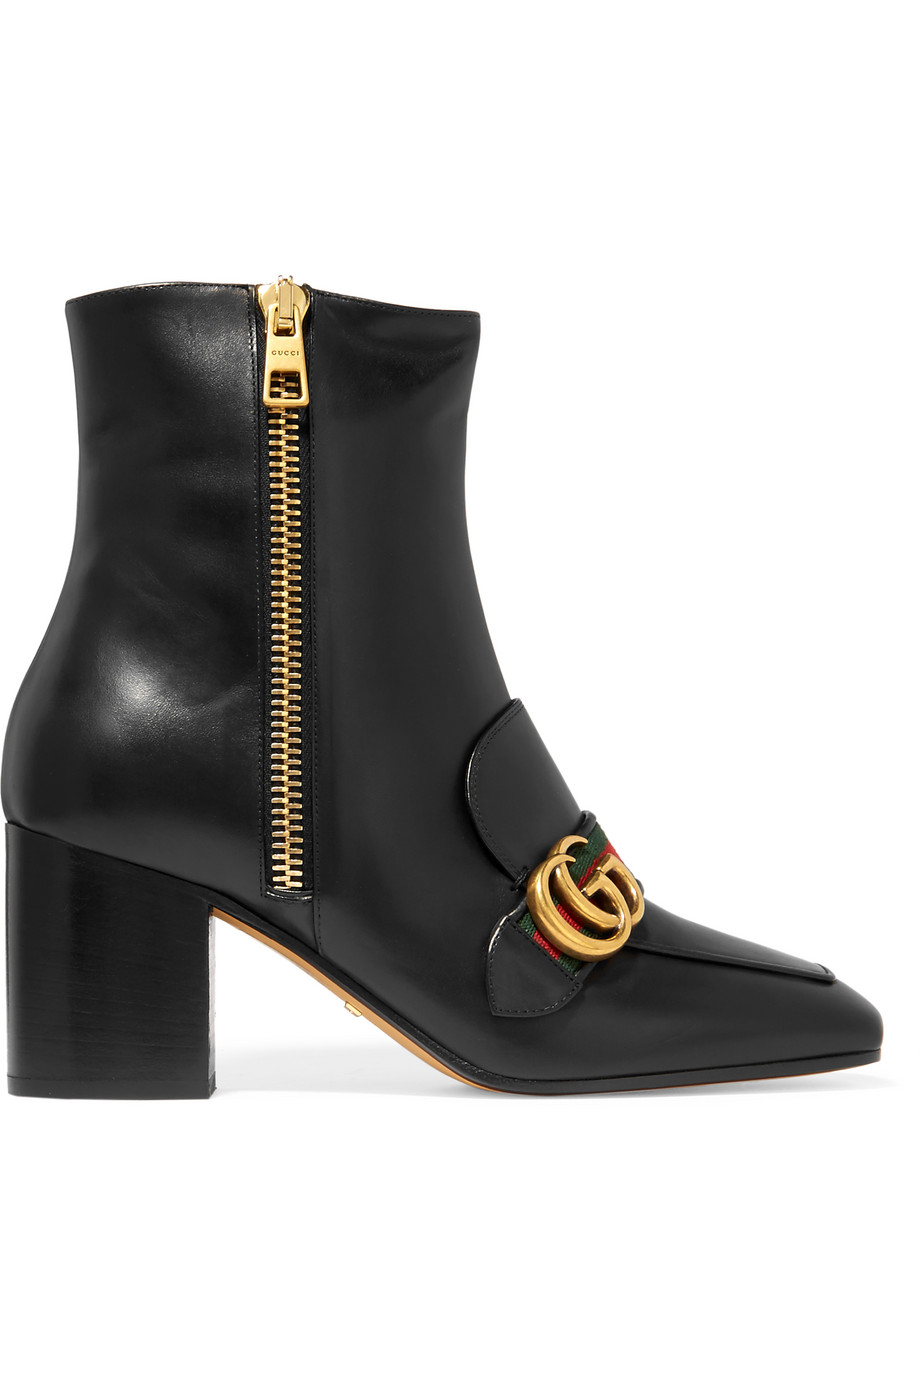 Gucci Leather Ankle Boots, Black, Women's US Size: 11, Size: 41.5